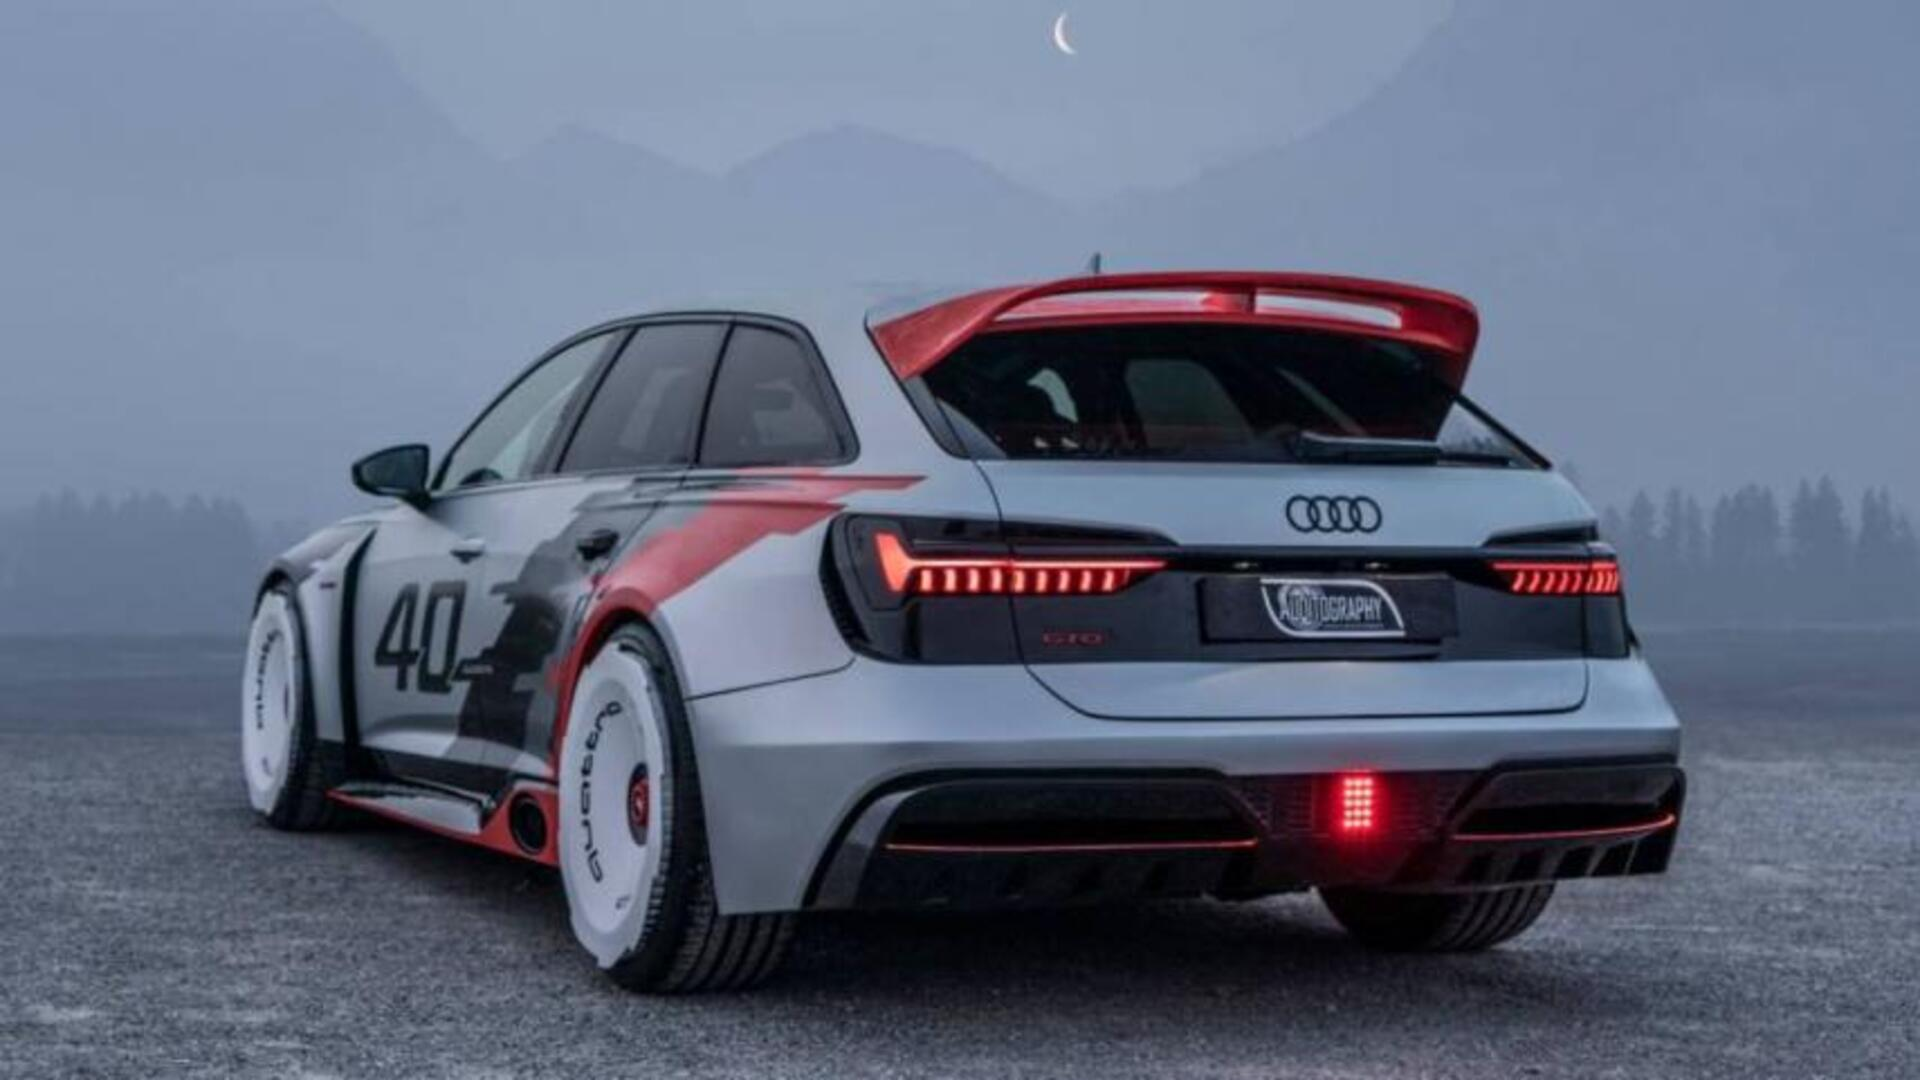 Video Ruge Audi Rs6 Gto Copy 1